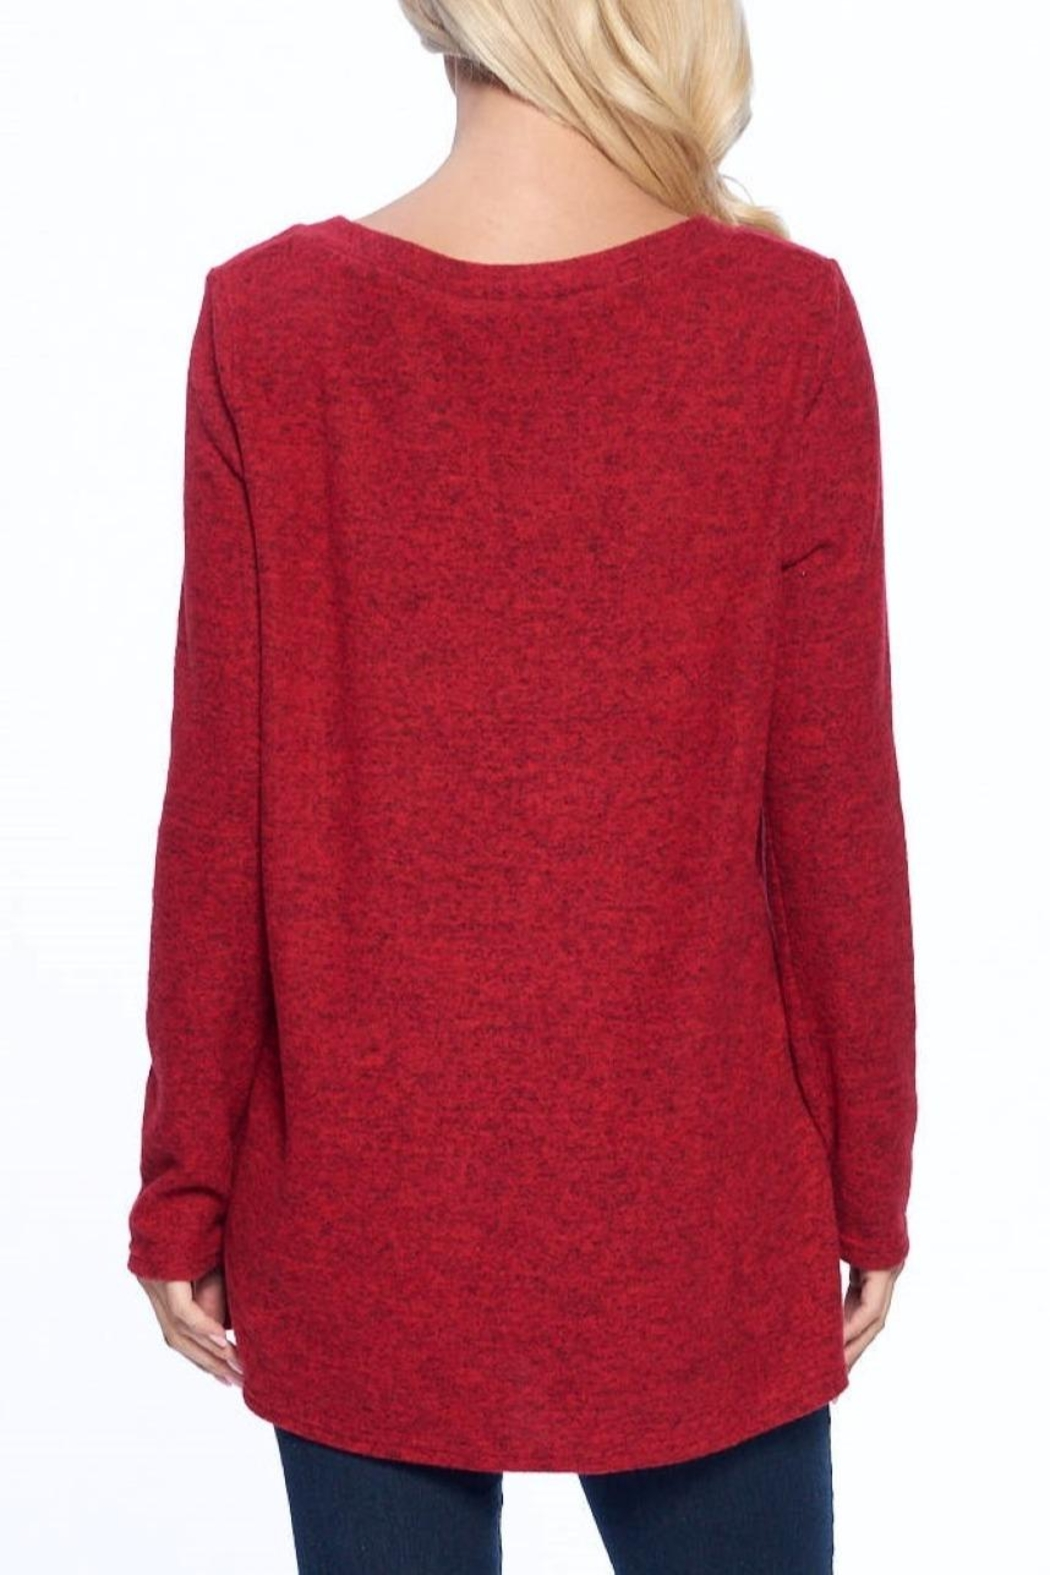 Aryeh Red V-Neck Knit Top - Back Cropped Image